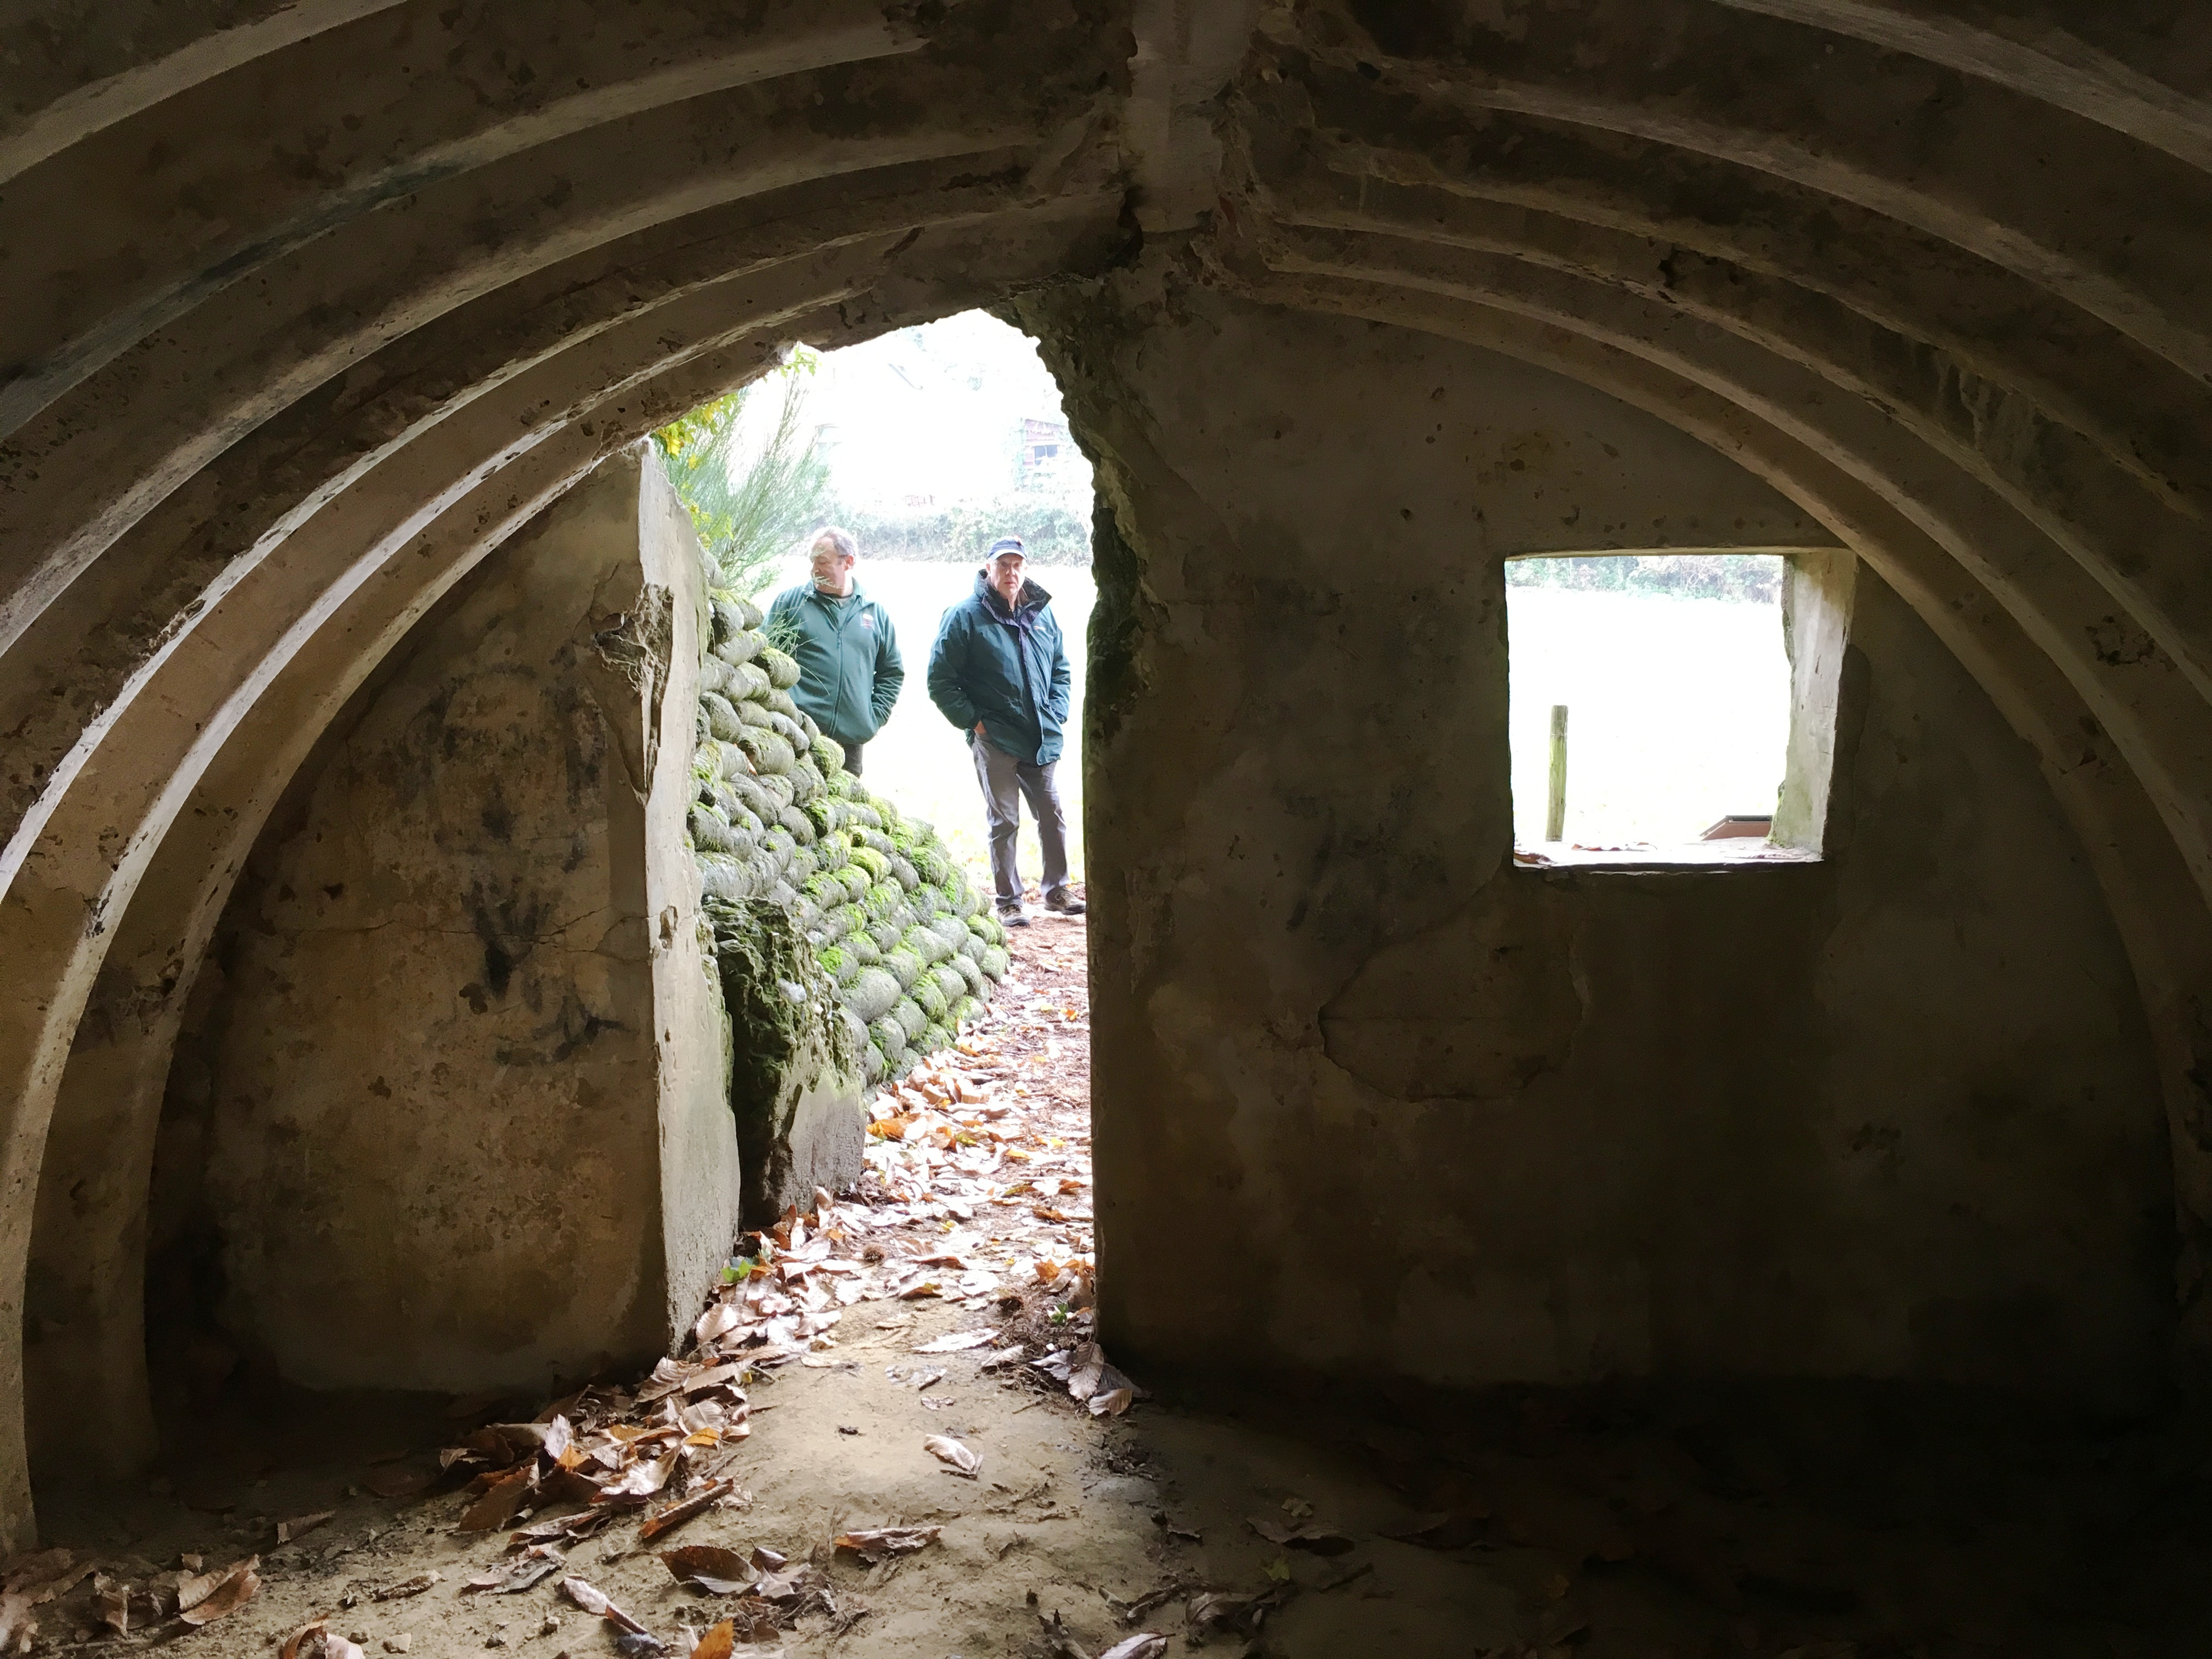 16-lettenberg-bunkers-ypres-salient-view-from-inside-one-of-the-bunkers